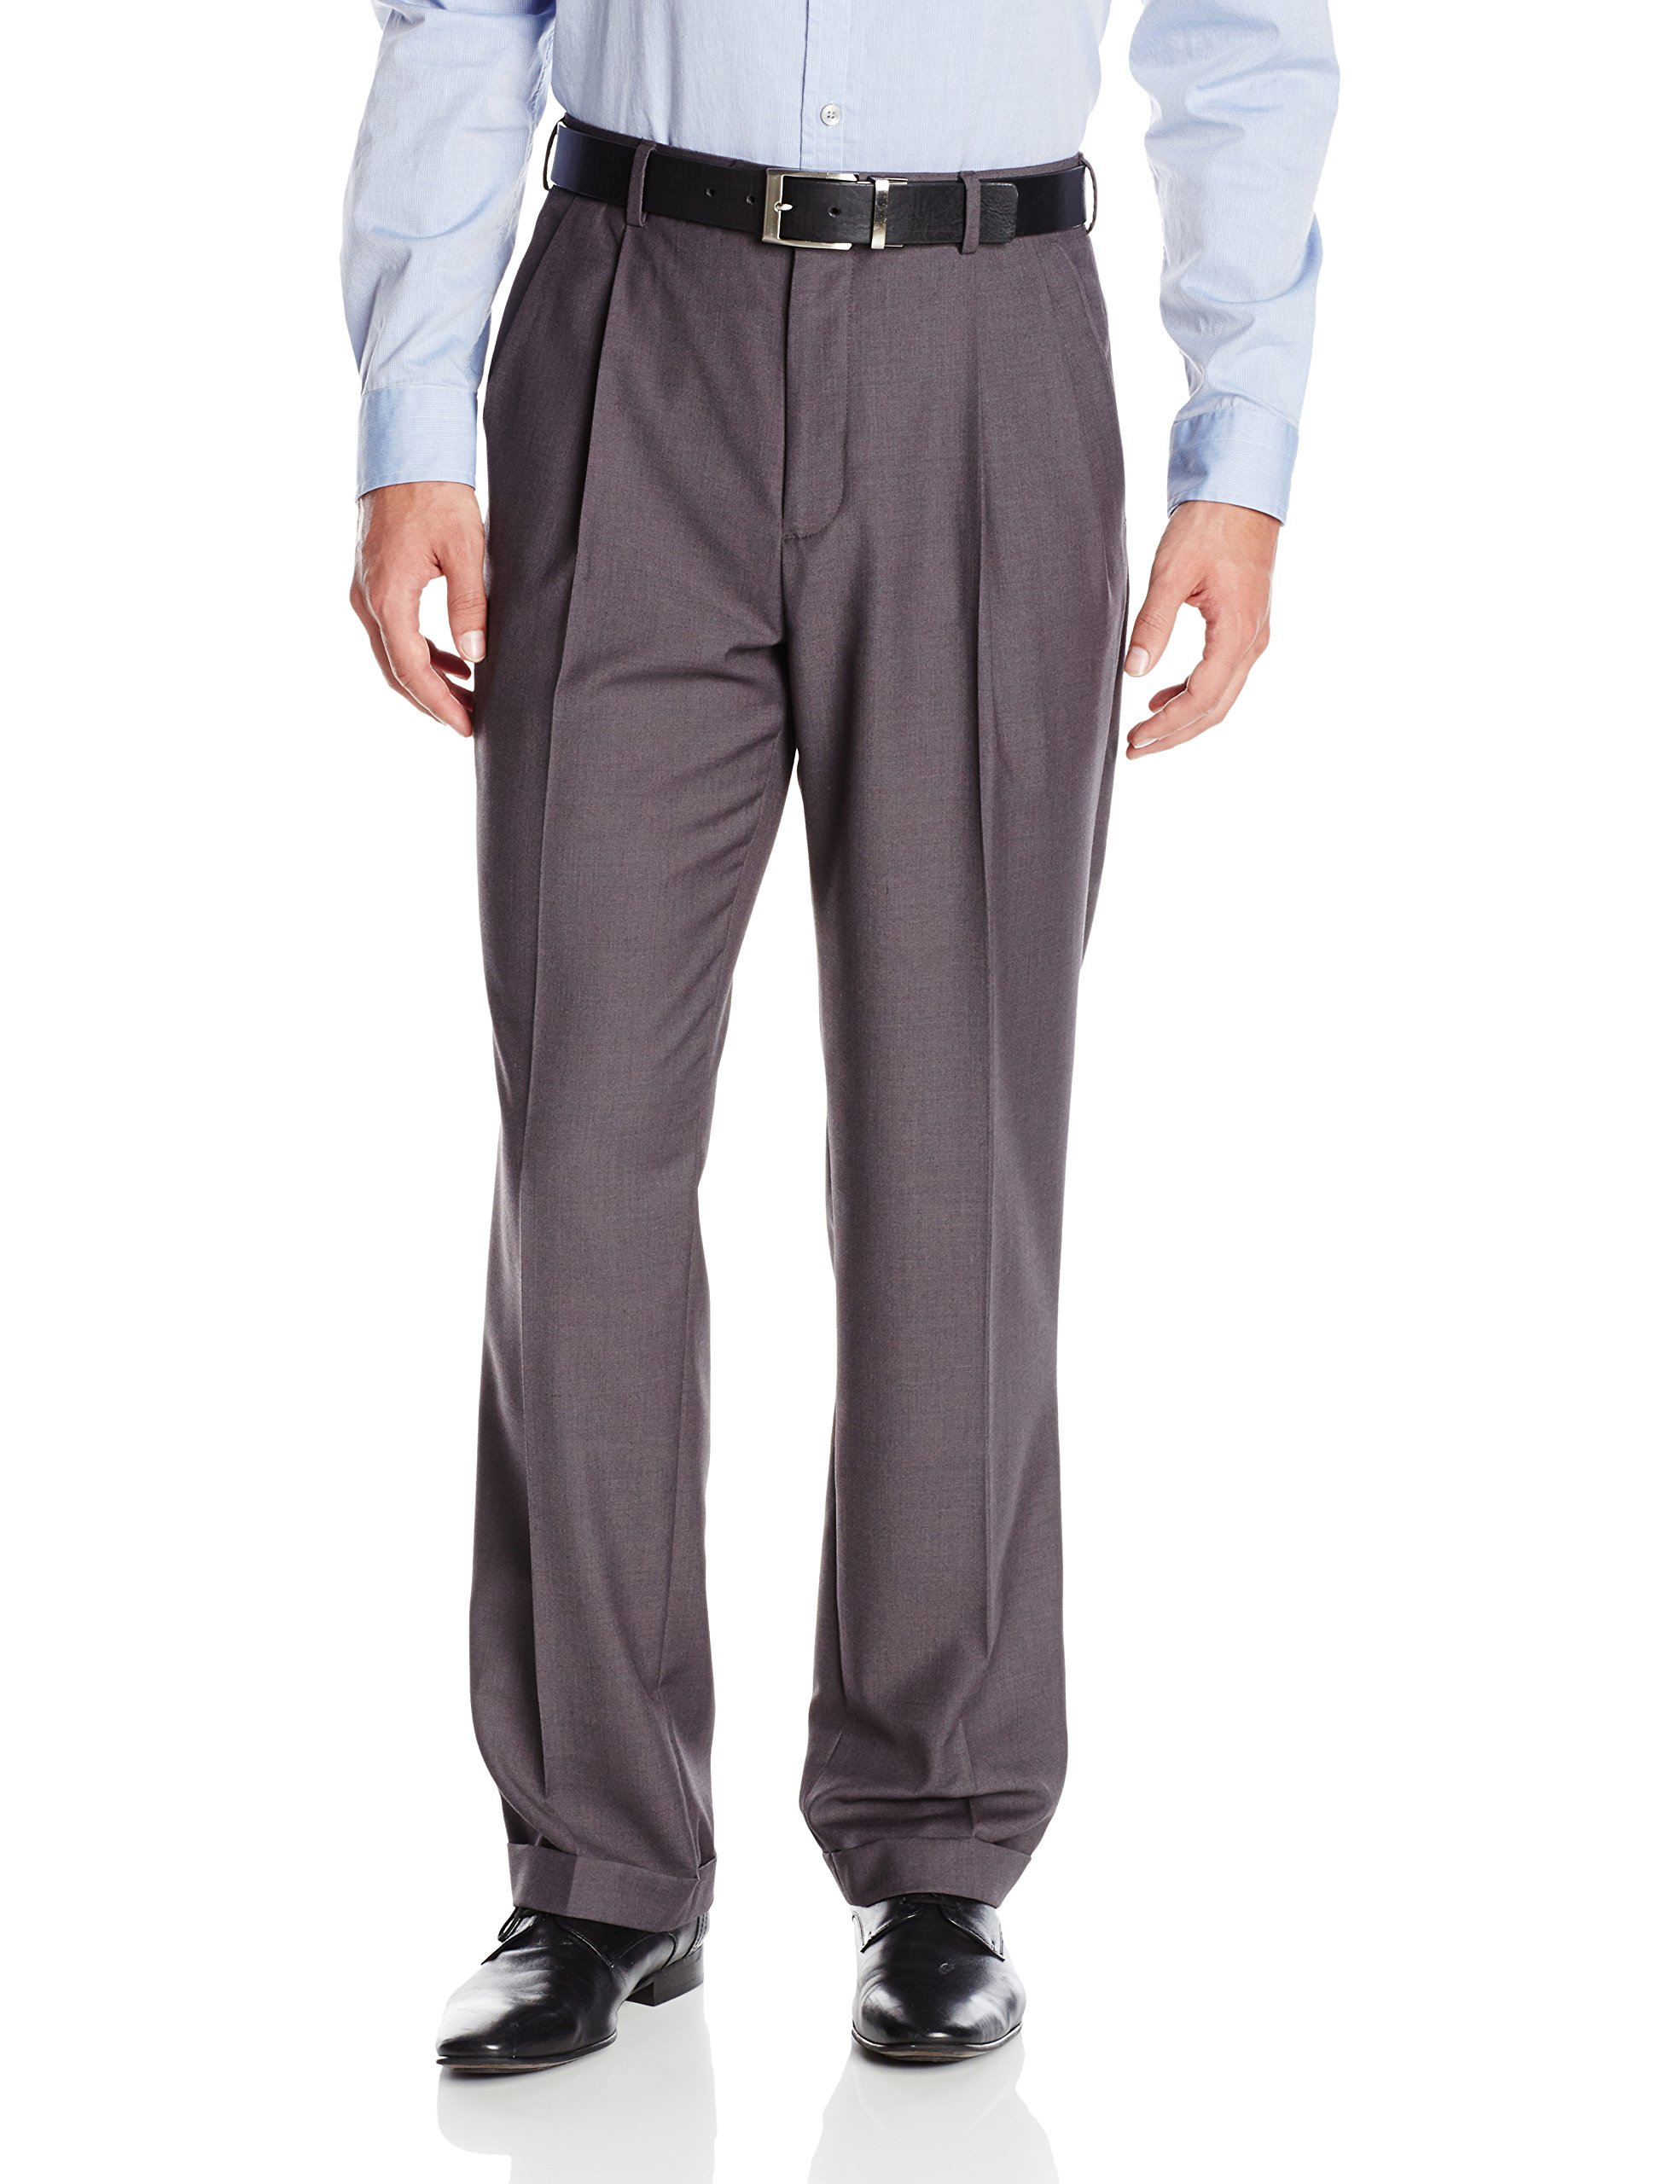 Louis Raphael Men's Straight Fit Pleated Suit Seperate Pant, Smoke, 36x30